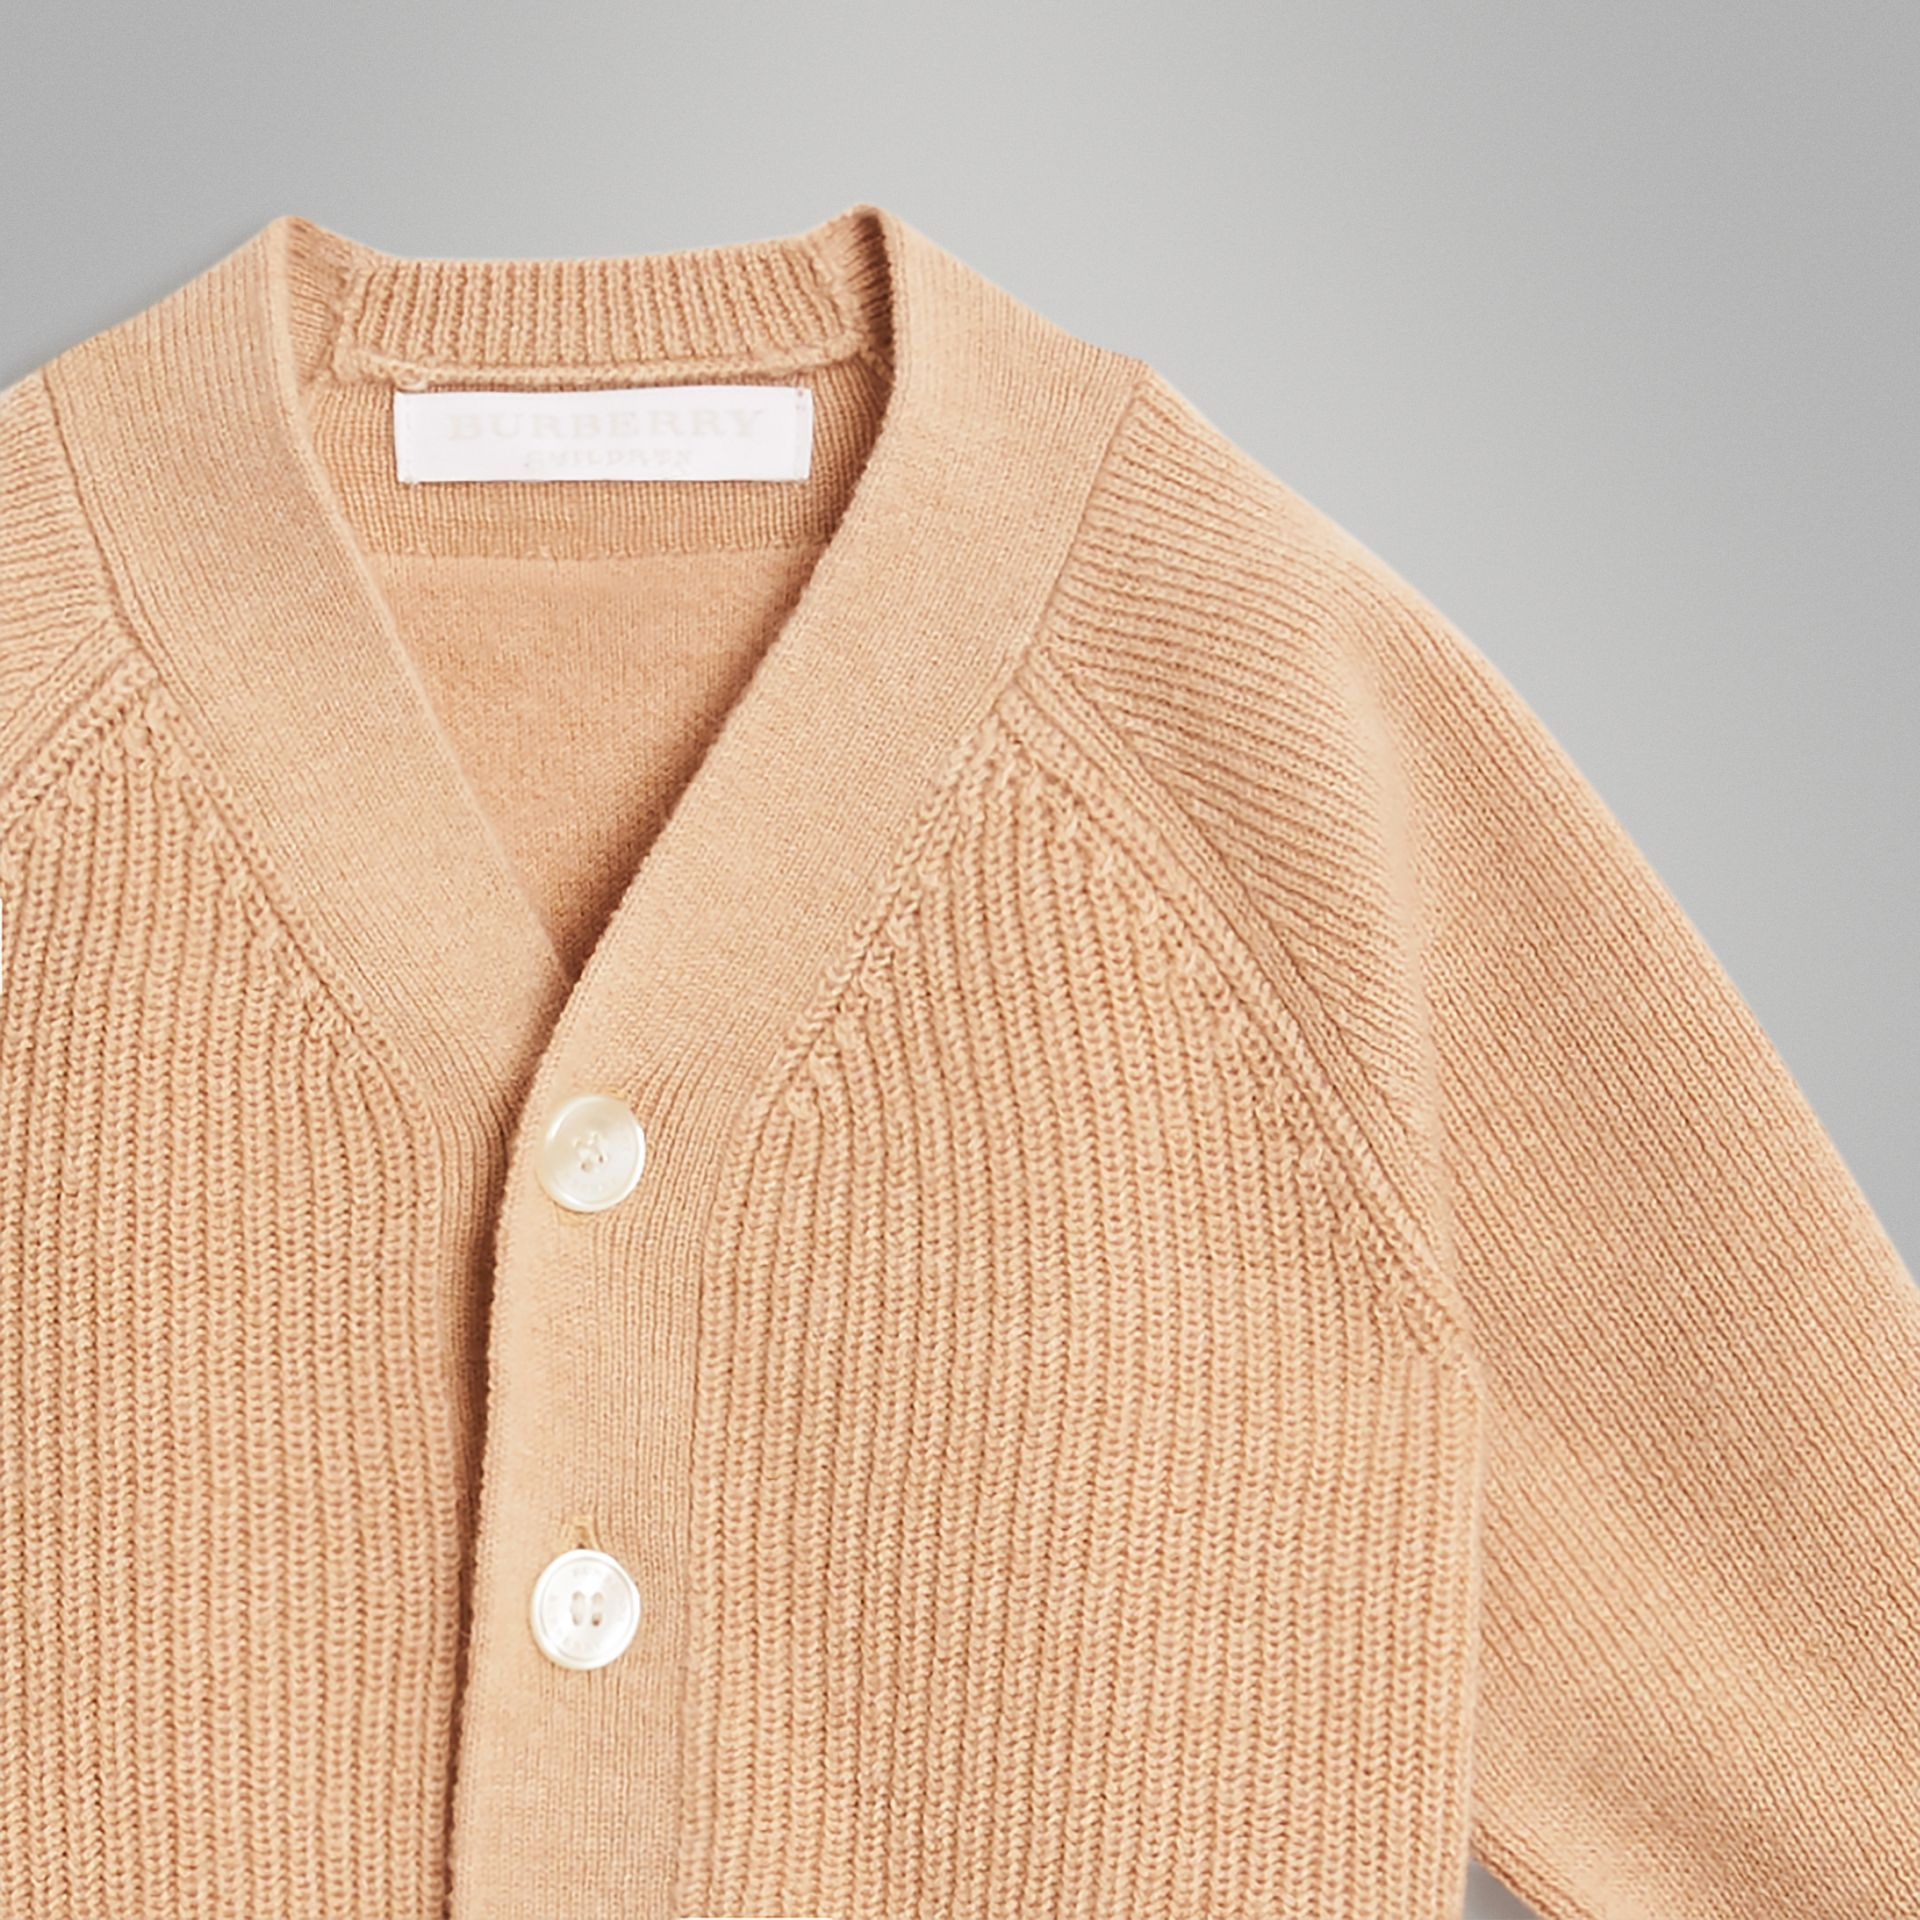 Cashmere Cotton Knit Cardigan in Peach - Children | Burberry - gallery image 4